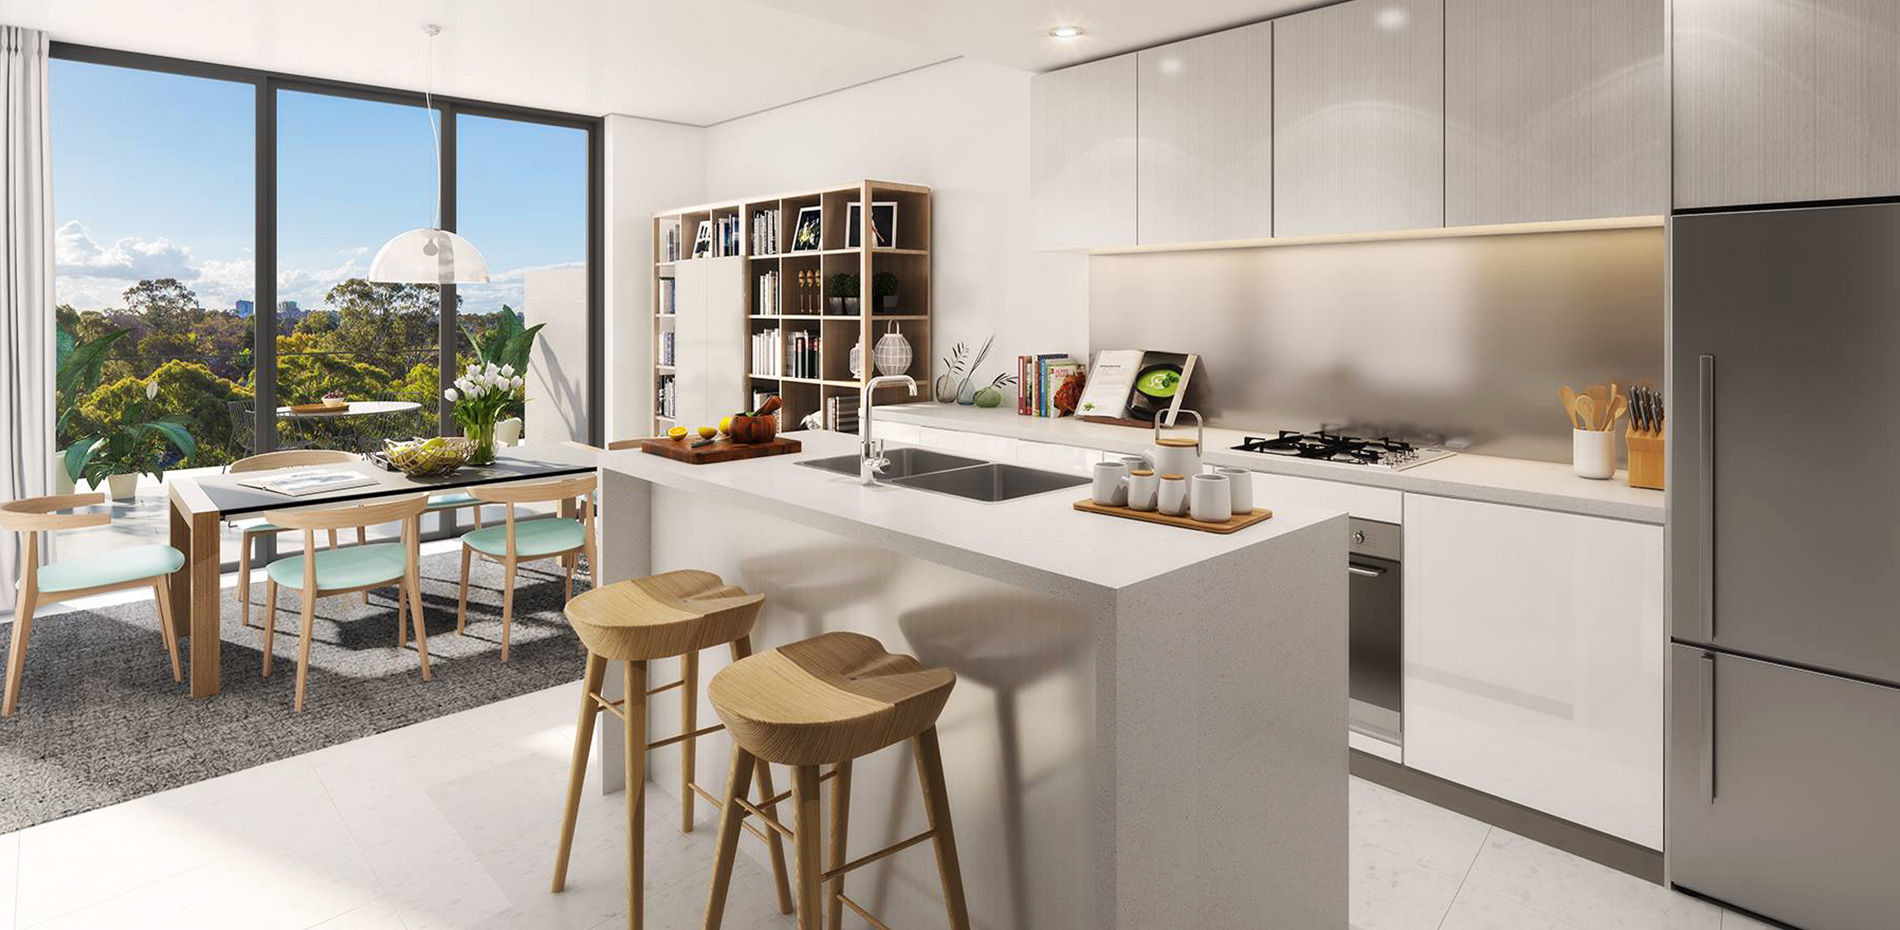 kitchen renovations in sydney penrith blue mountains kitchen